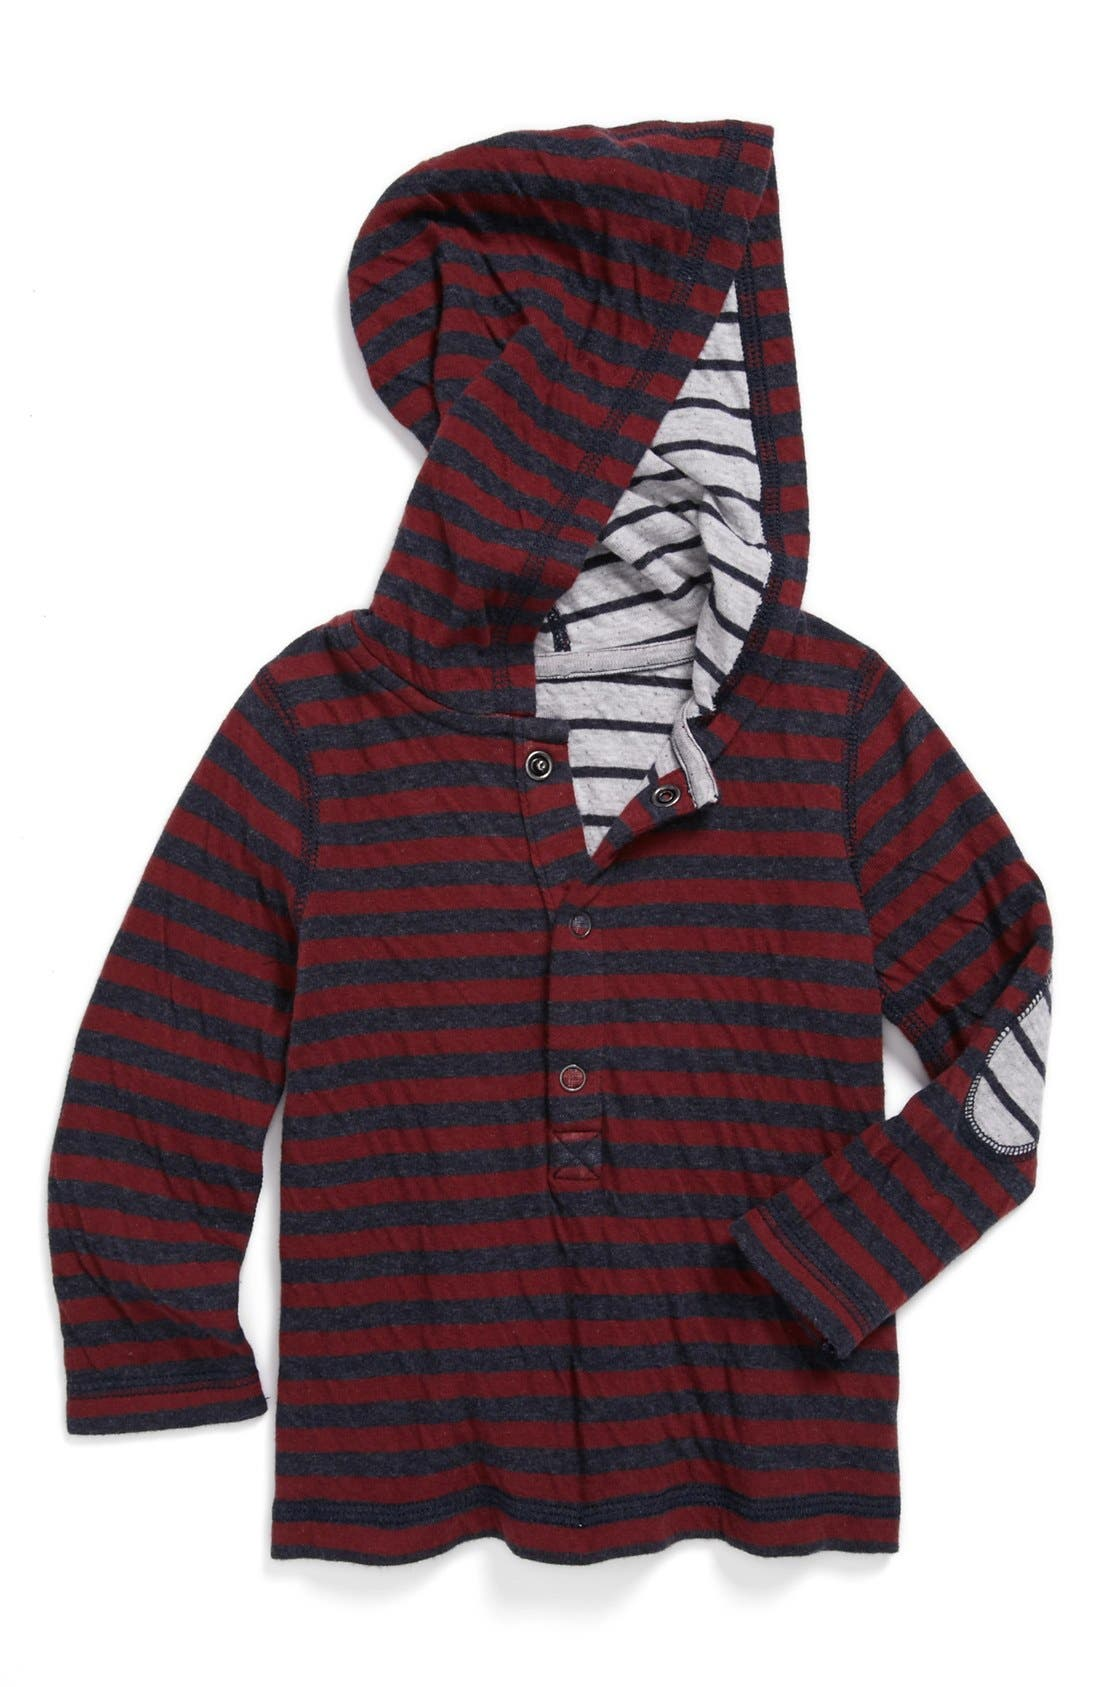 Alternate Image 1 Selected - Tucker + Tate Reversible Long Sleeve Henley Hoodie (Toddler)